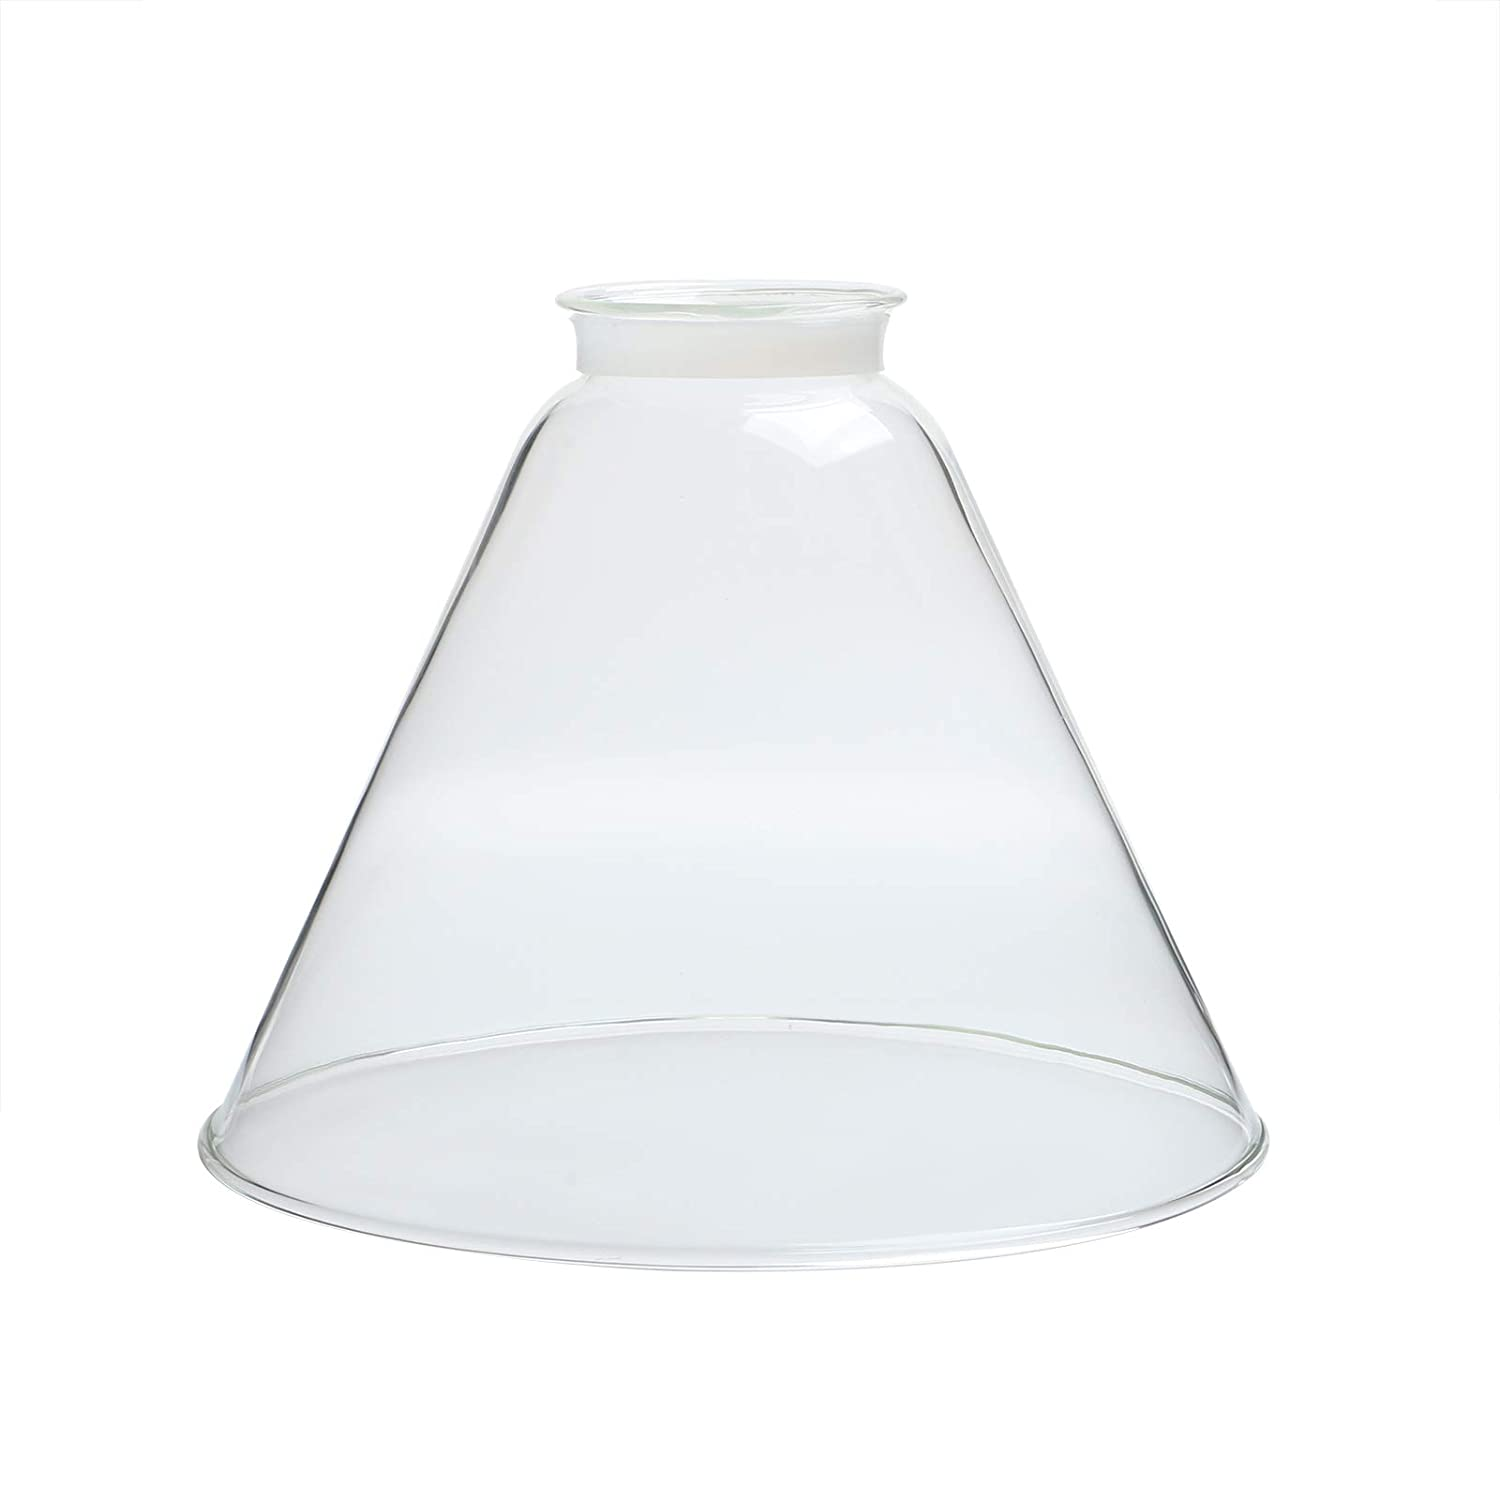 Permo lighting fixture replacement funnel flared clear glass shade amazon com